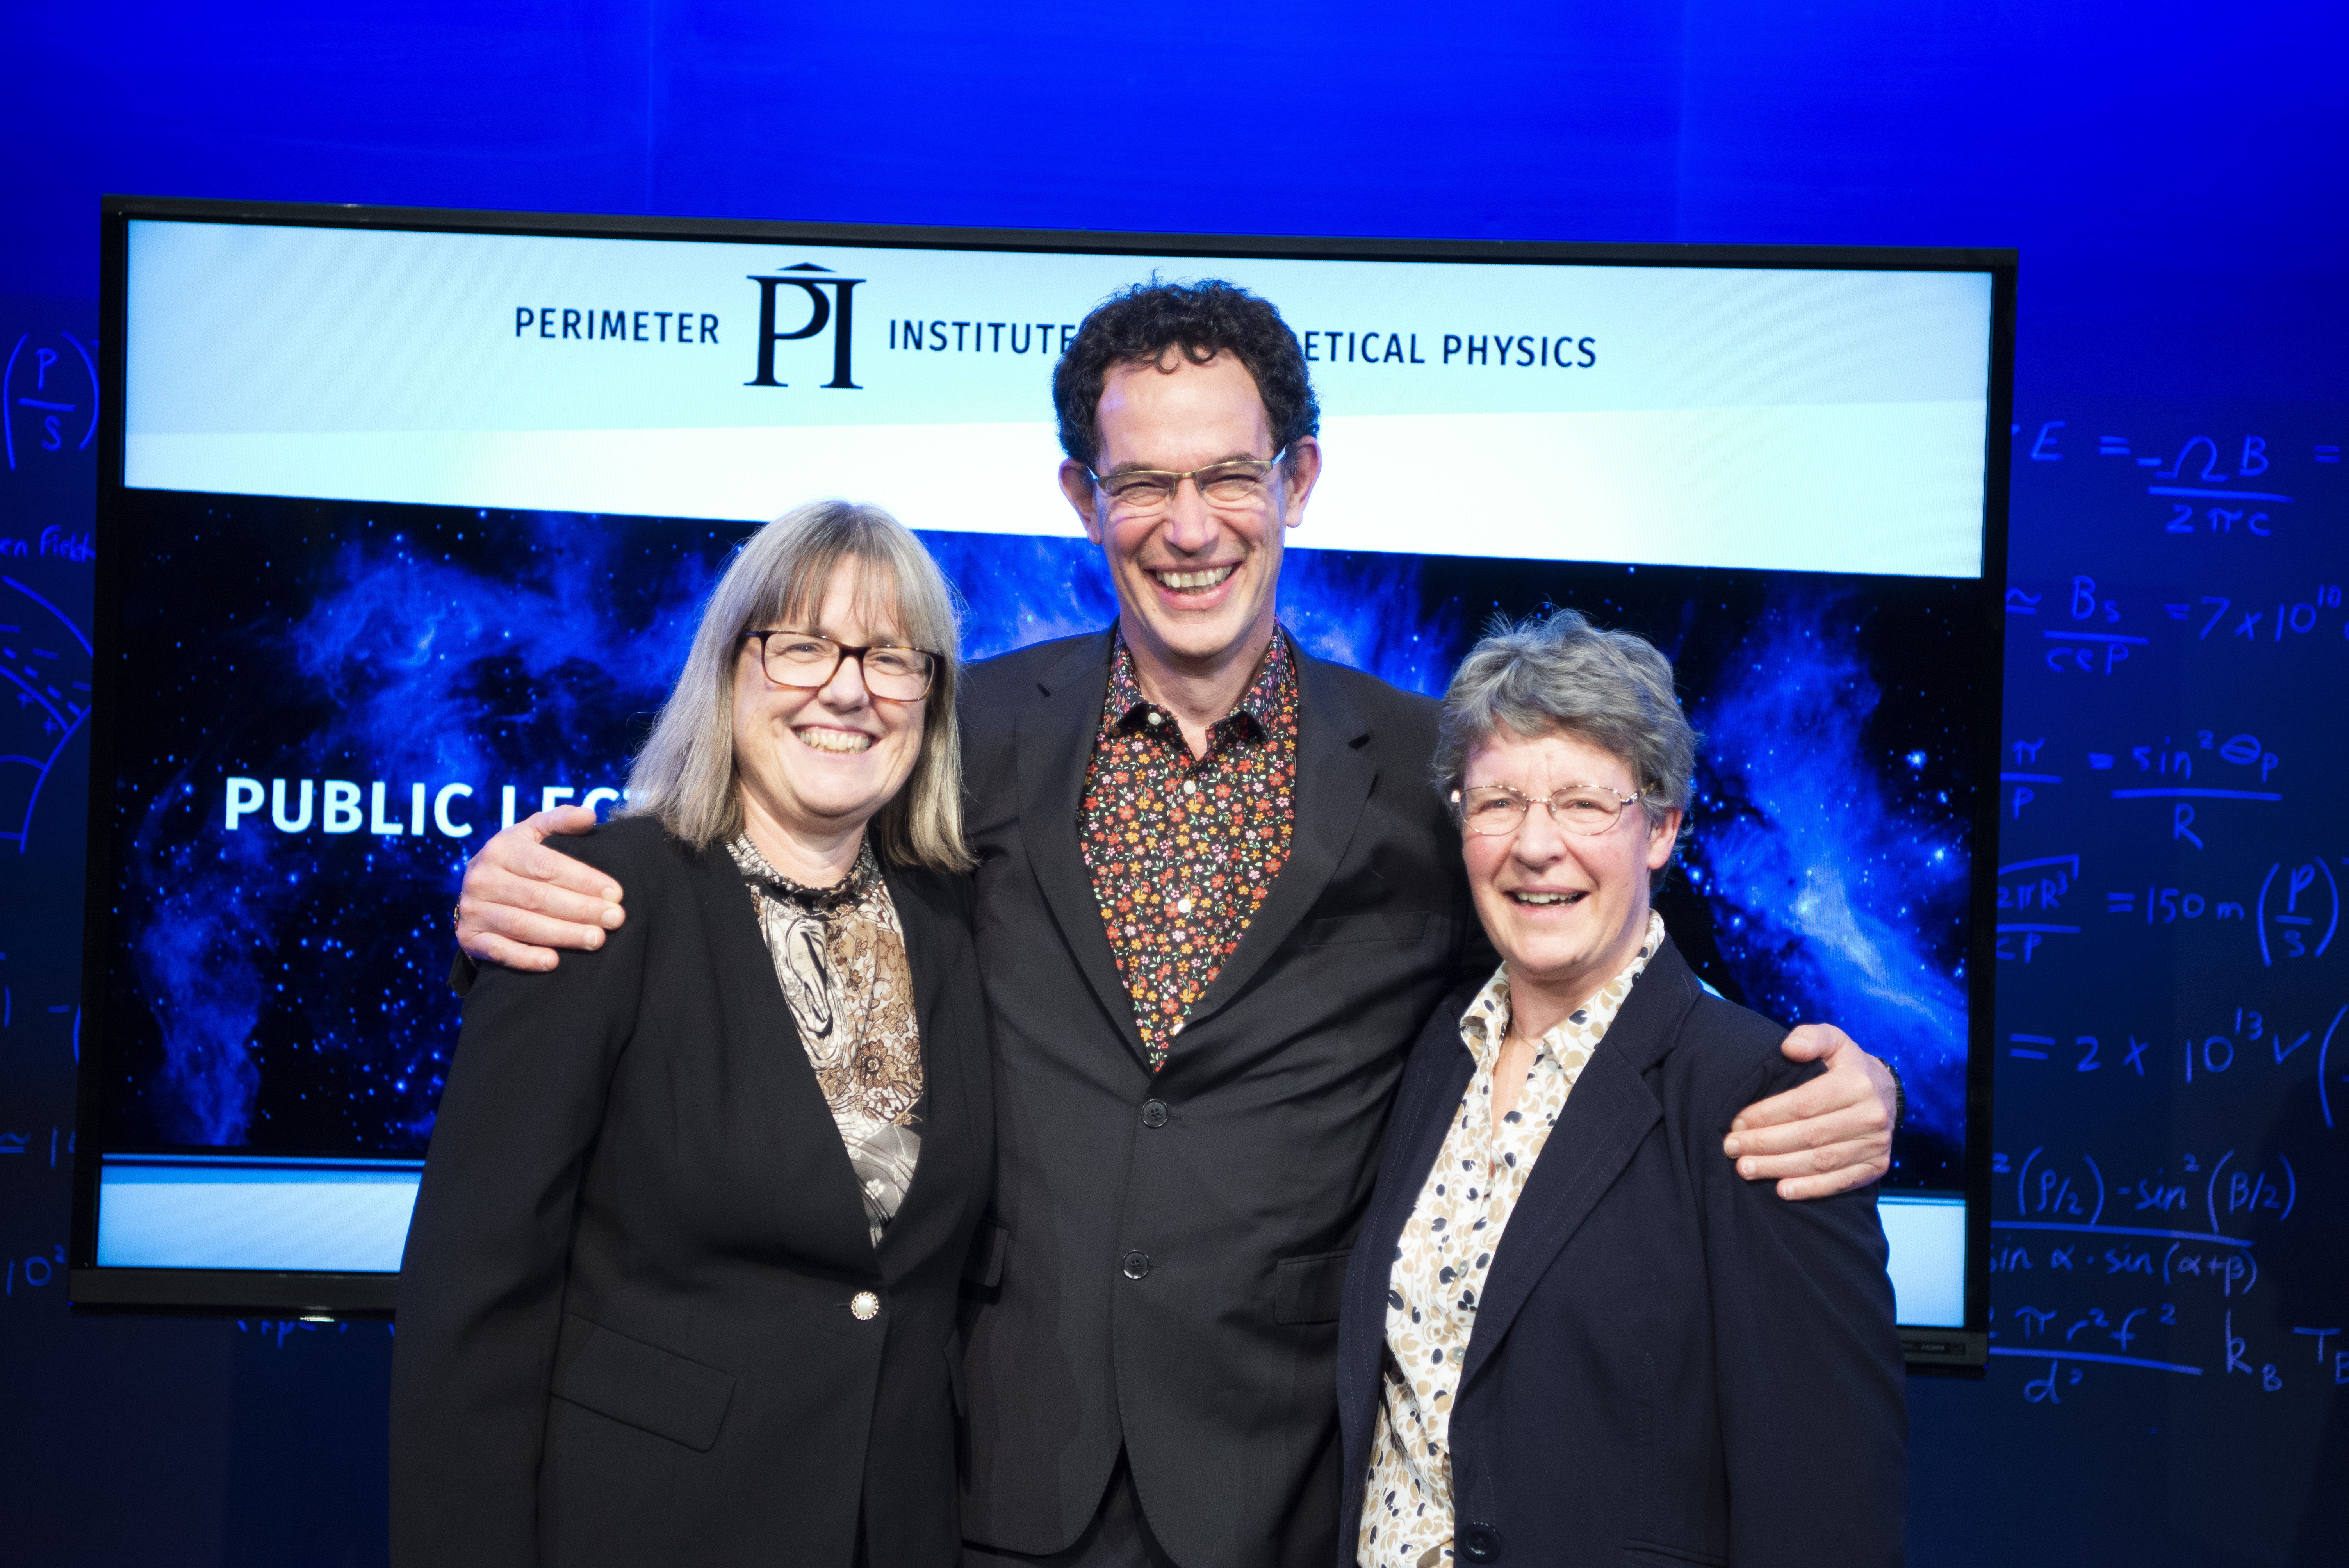 Donna Strickland, Neil Turok and Jocelyn Bell-Burnell standing together after Jocelyn's public lecture and the announcements of the new fellowships